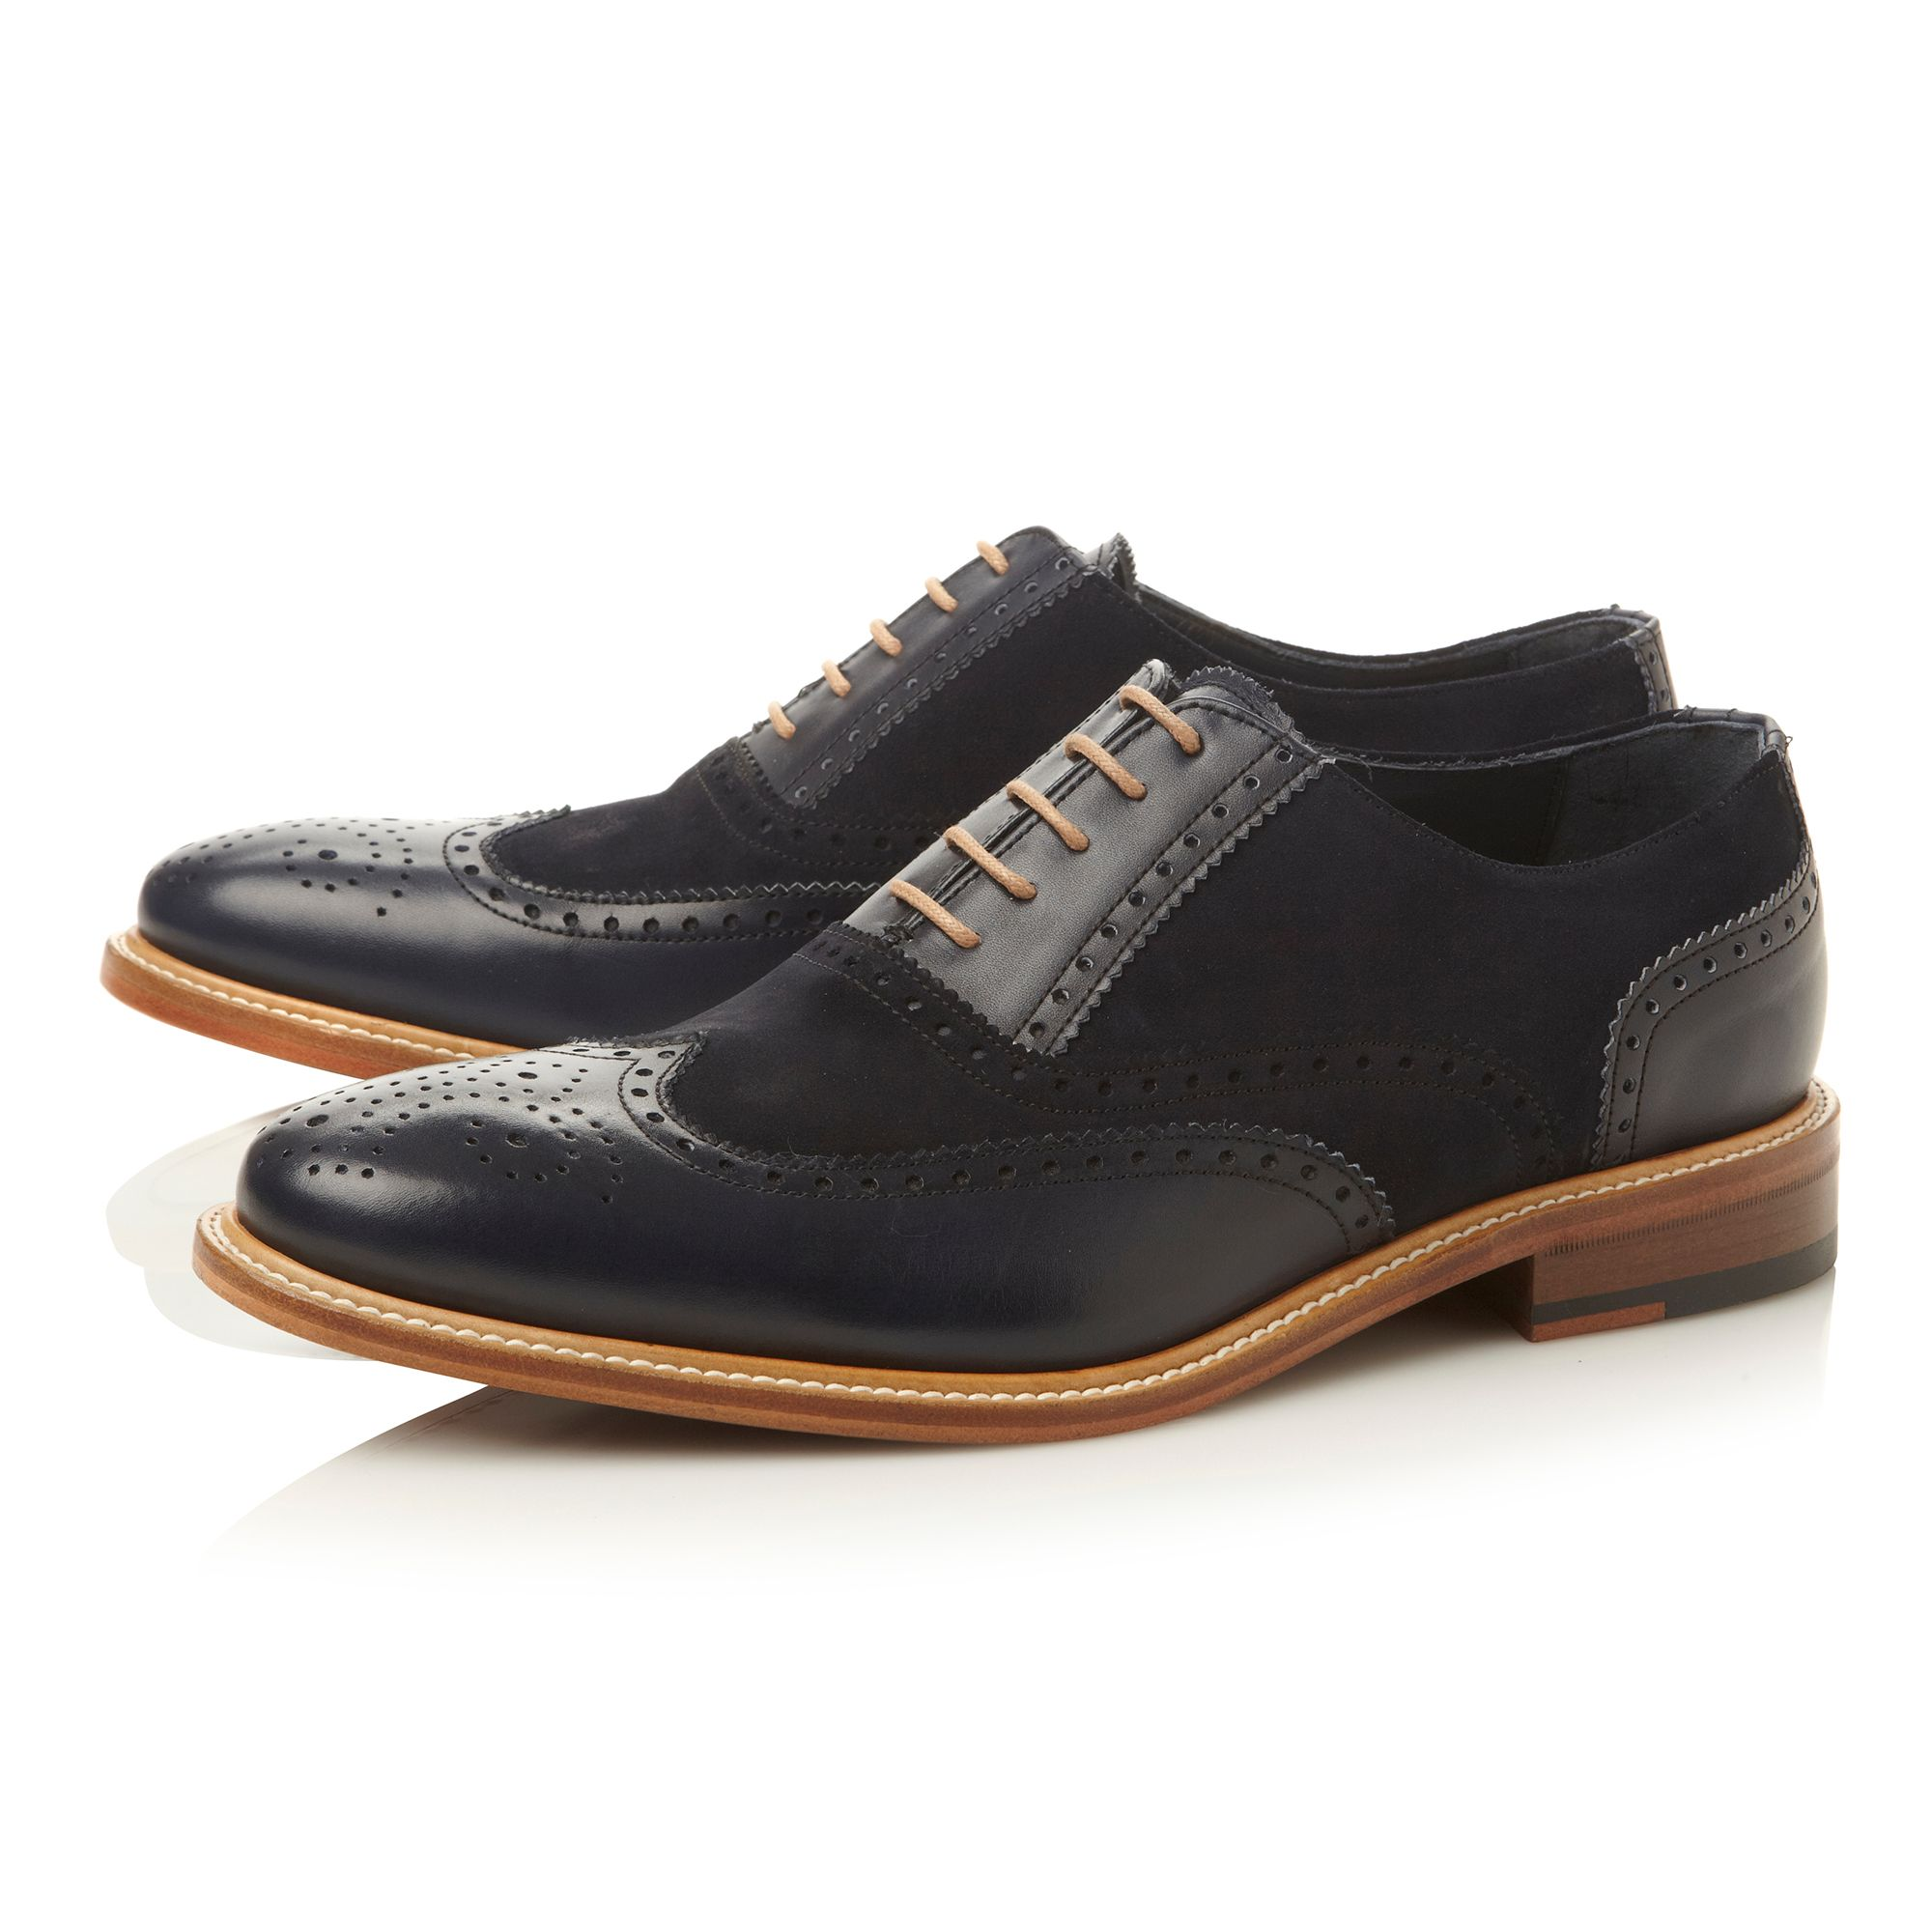 Sunbeam combo wingtip brogue